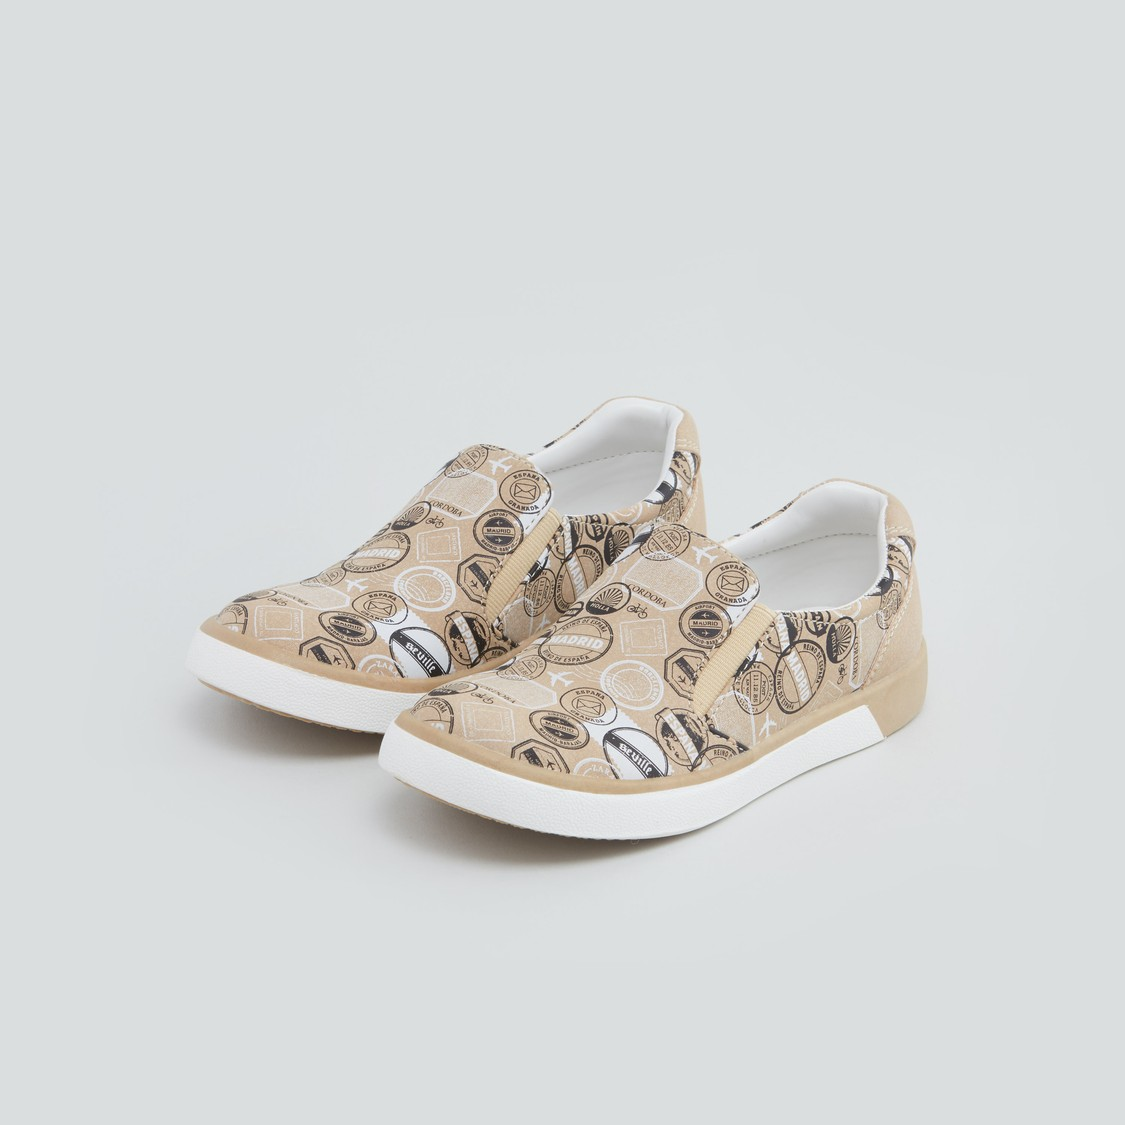 Printed Shoes with Gusset Detail